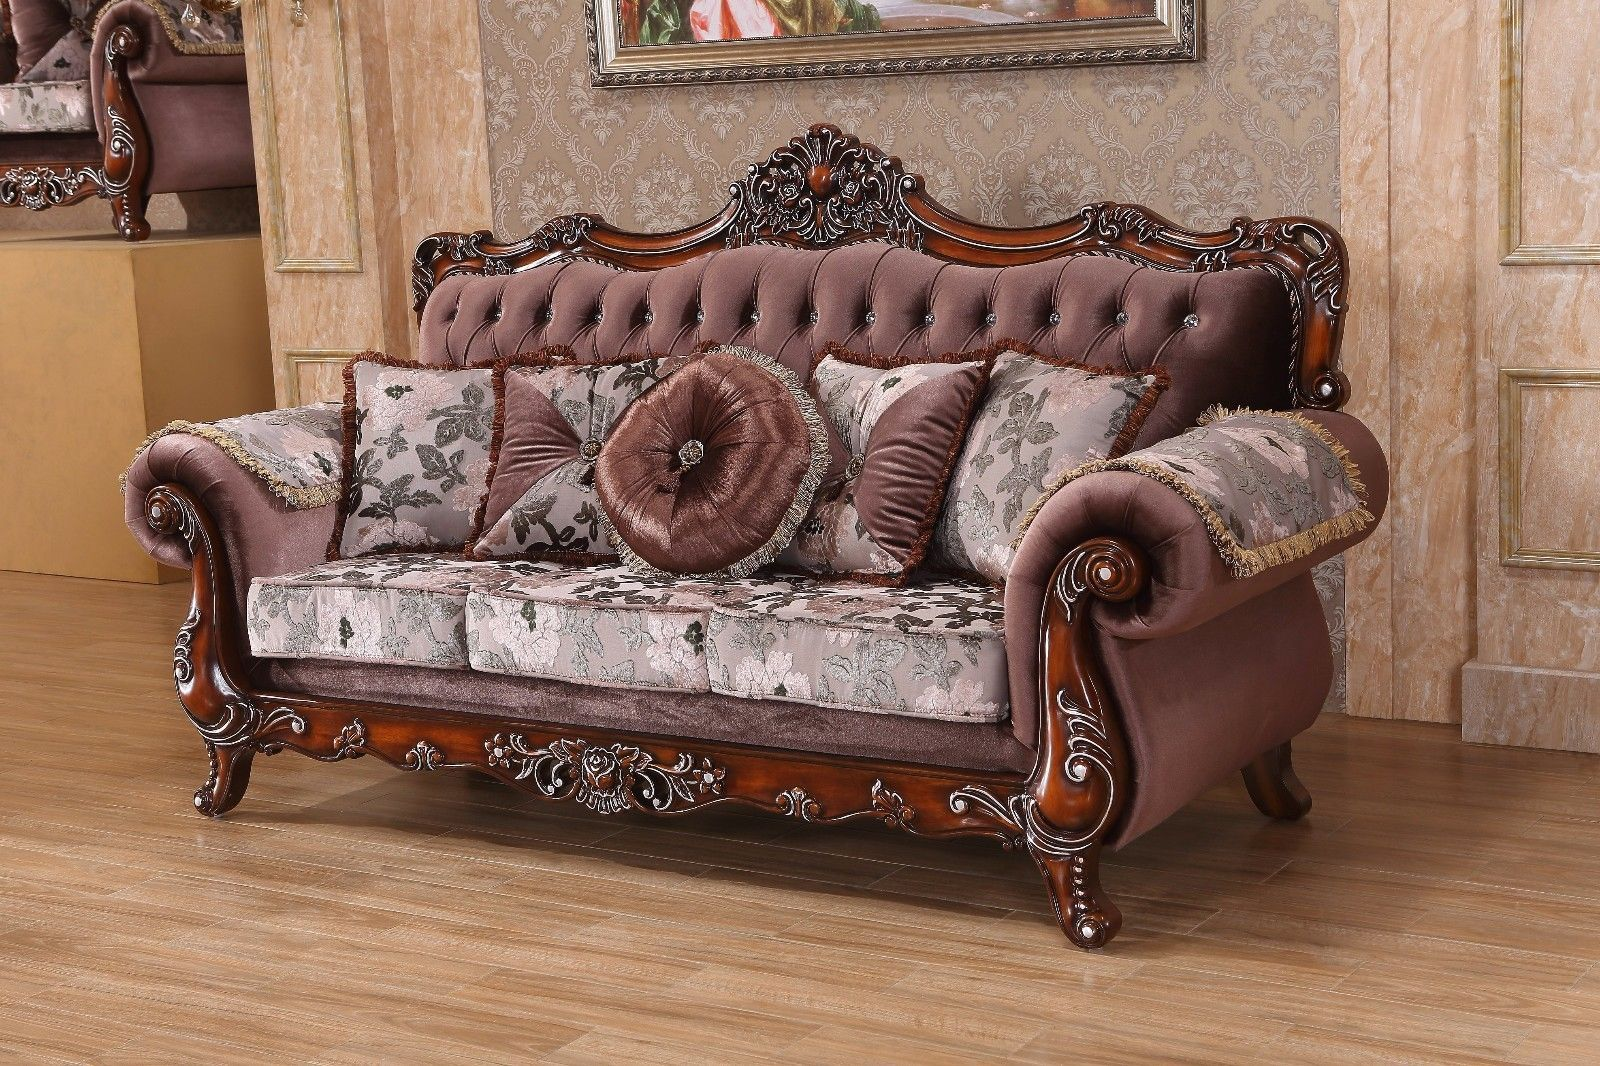 Meridian 637 Marbella Living Room Set 3pcs in Rose Crystal Traditional Style